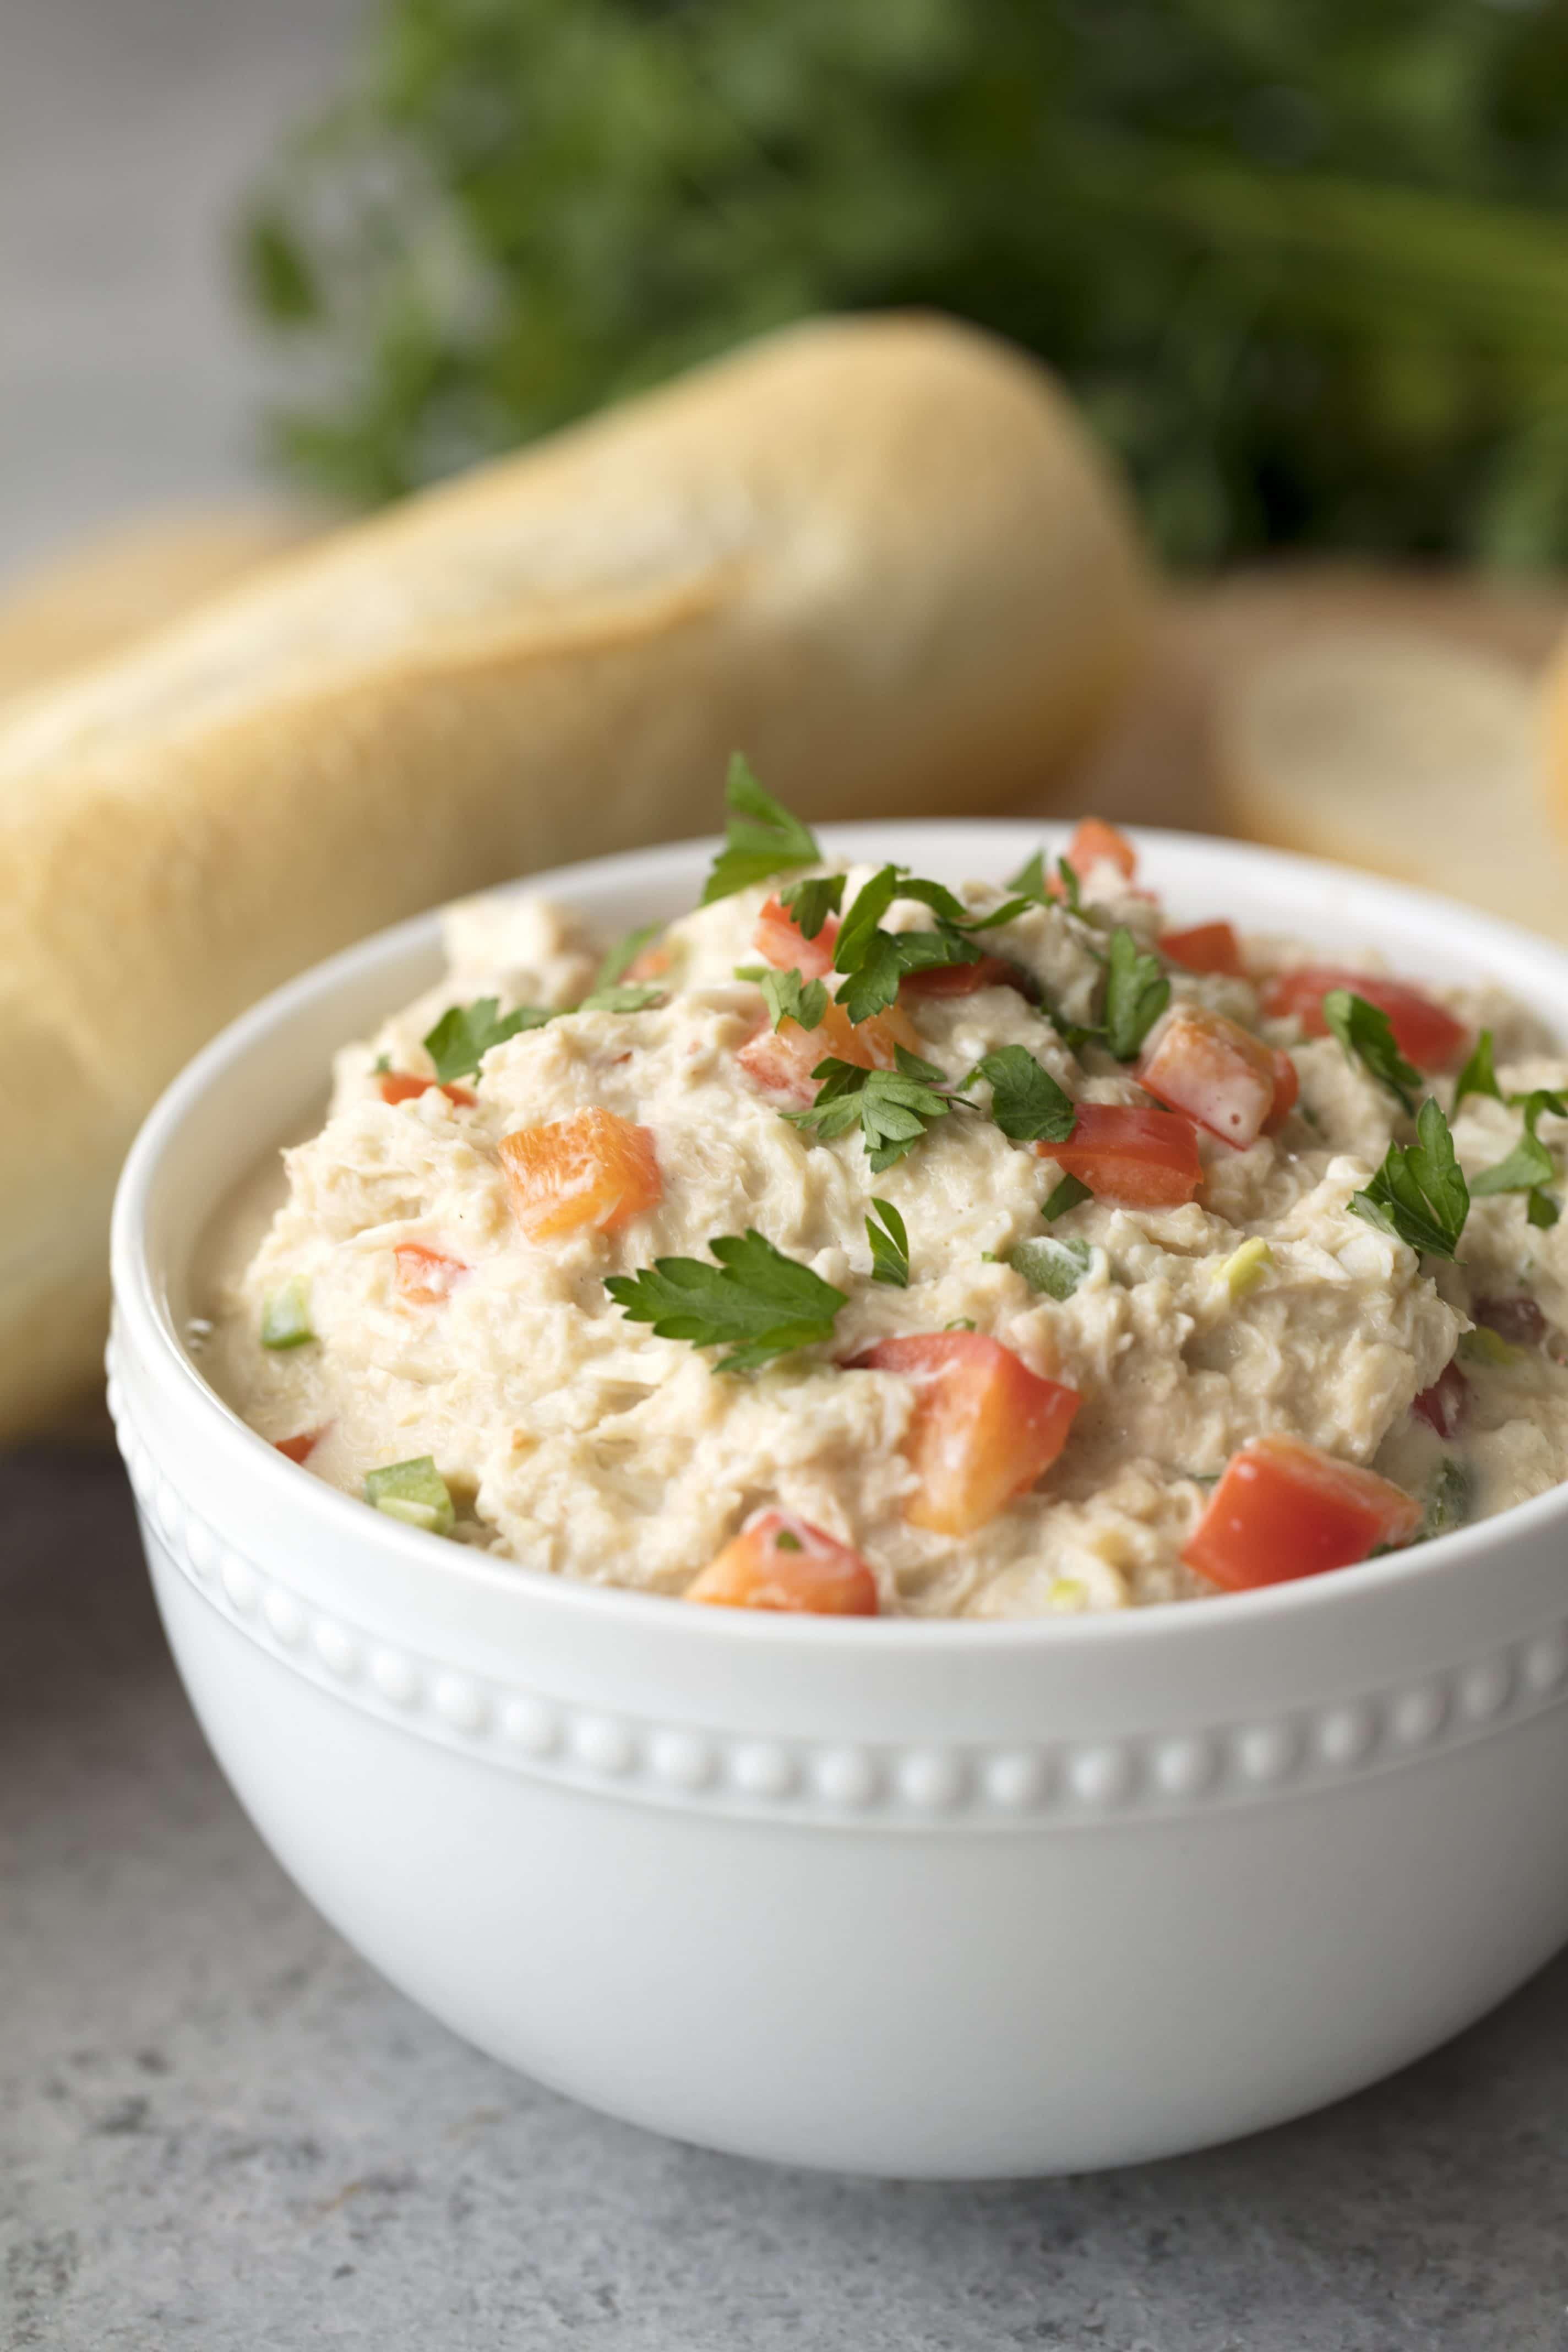 Free up time by making dip in the slow cooker. This Slow Cooker Spicy Crab Dip is a favorite at any party. It's the best crab dip you'll ever have!